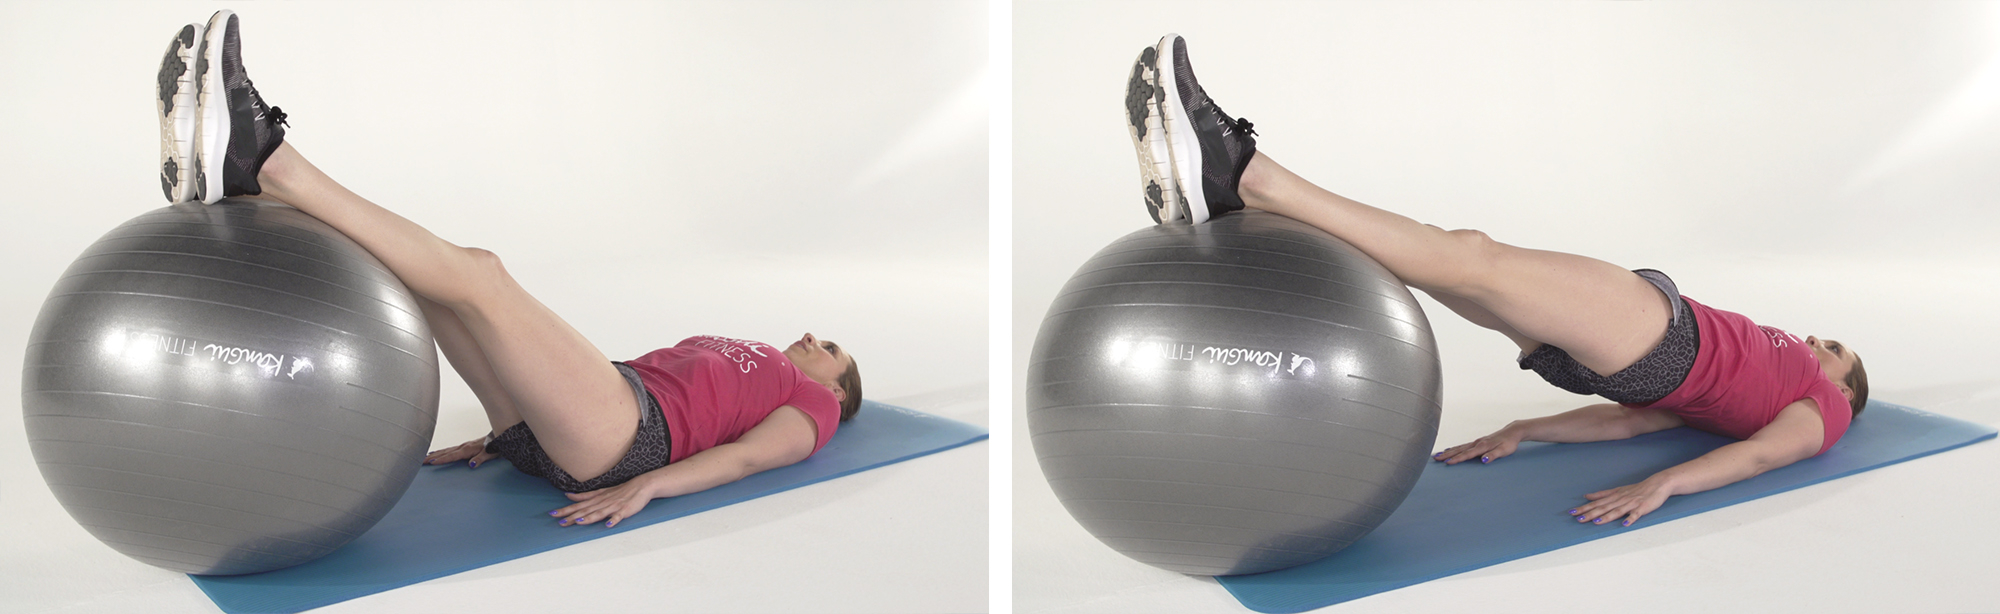 GAINAGE BALLON ventre plat exercice fitness